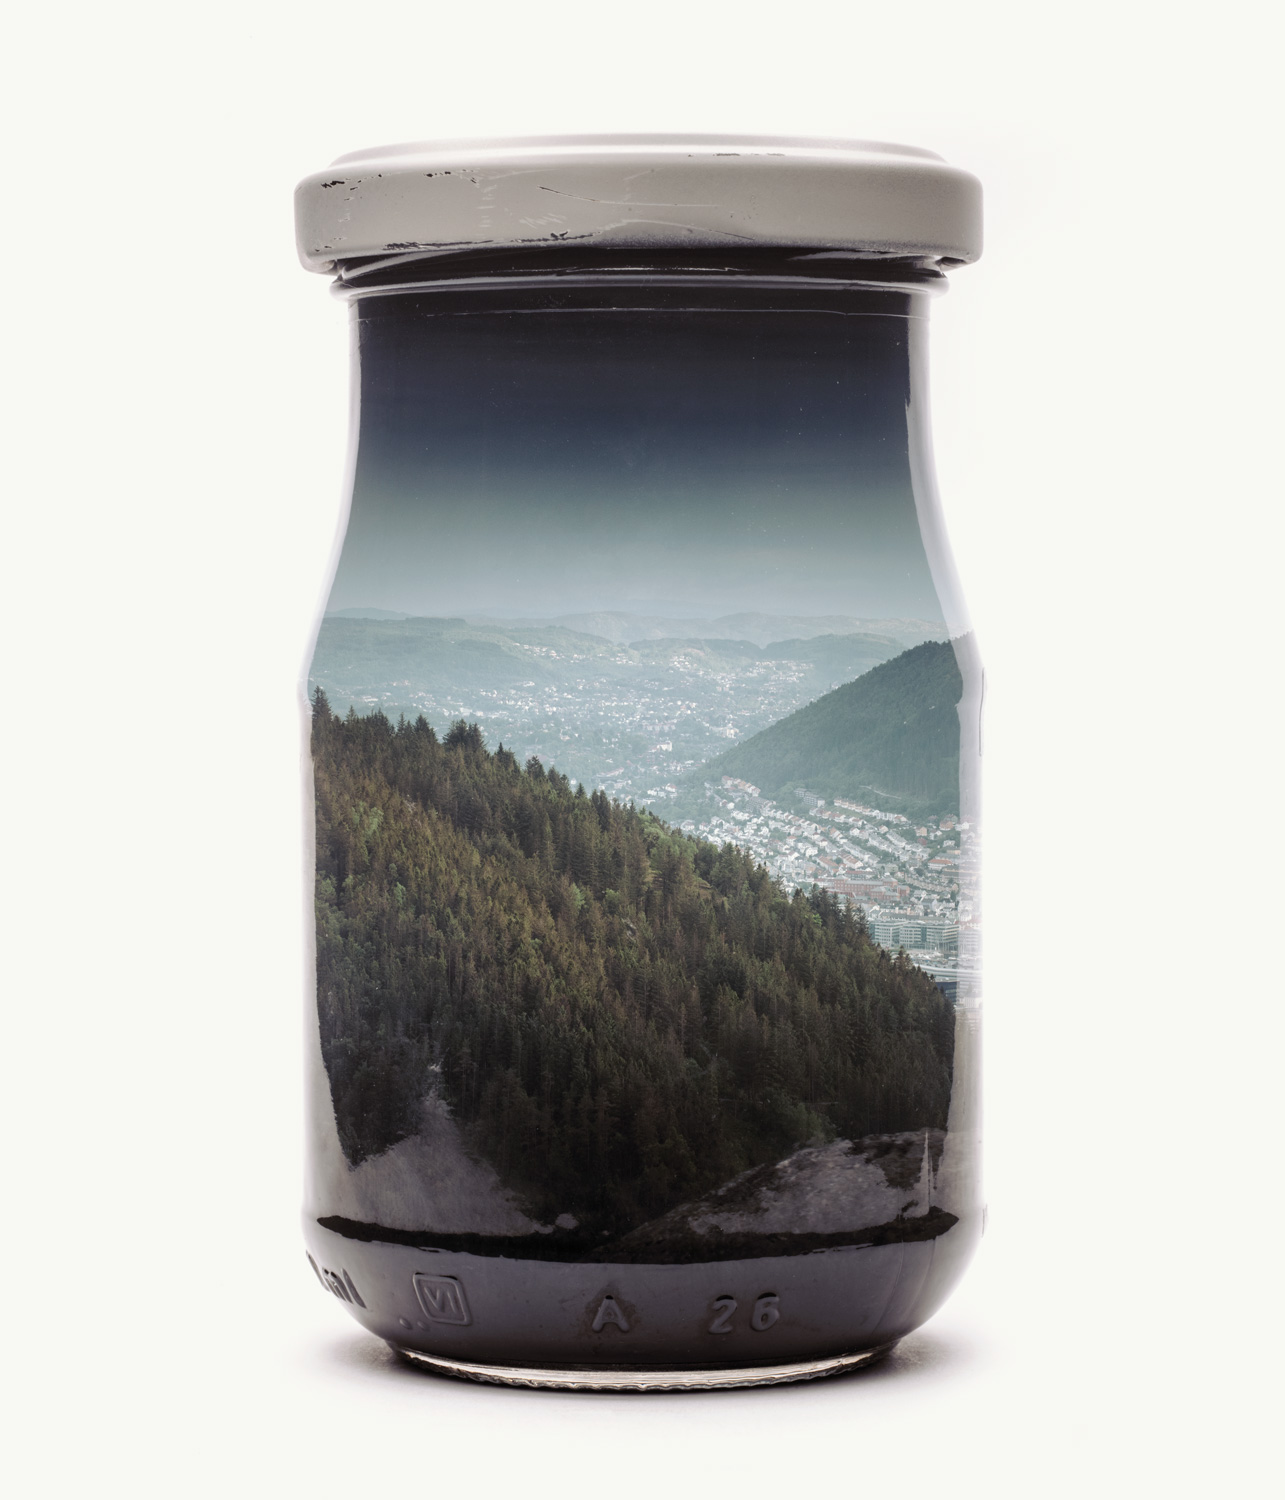 Visual Artwork: Bergen Edition - Jarred Mountain Forest II by artist and creator Christoffer Relander